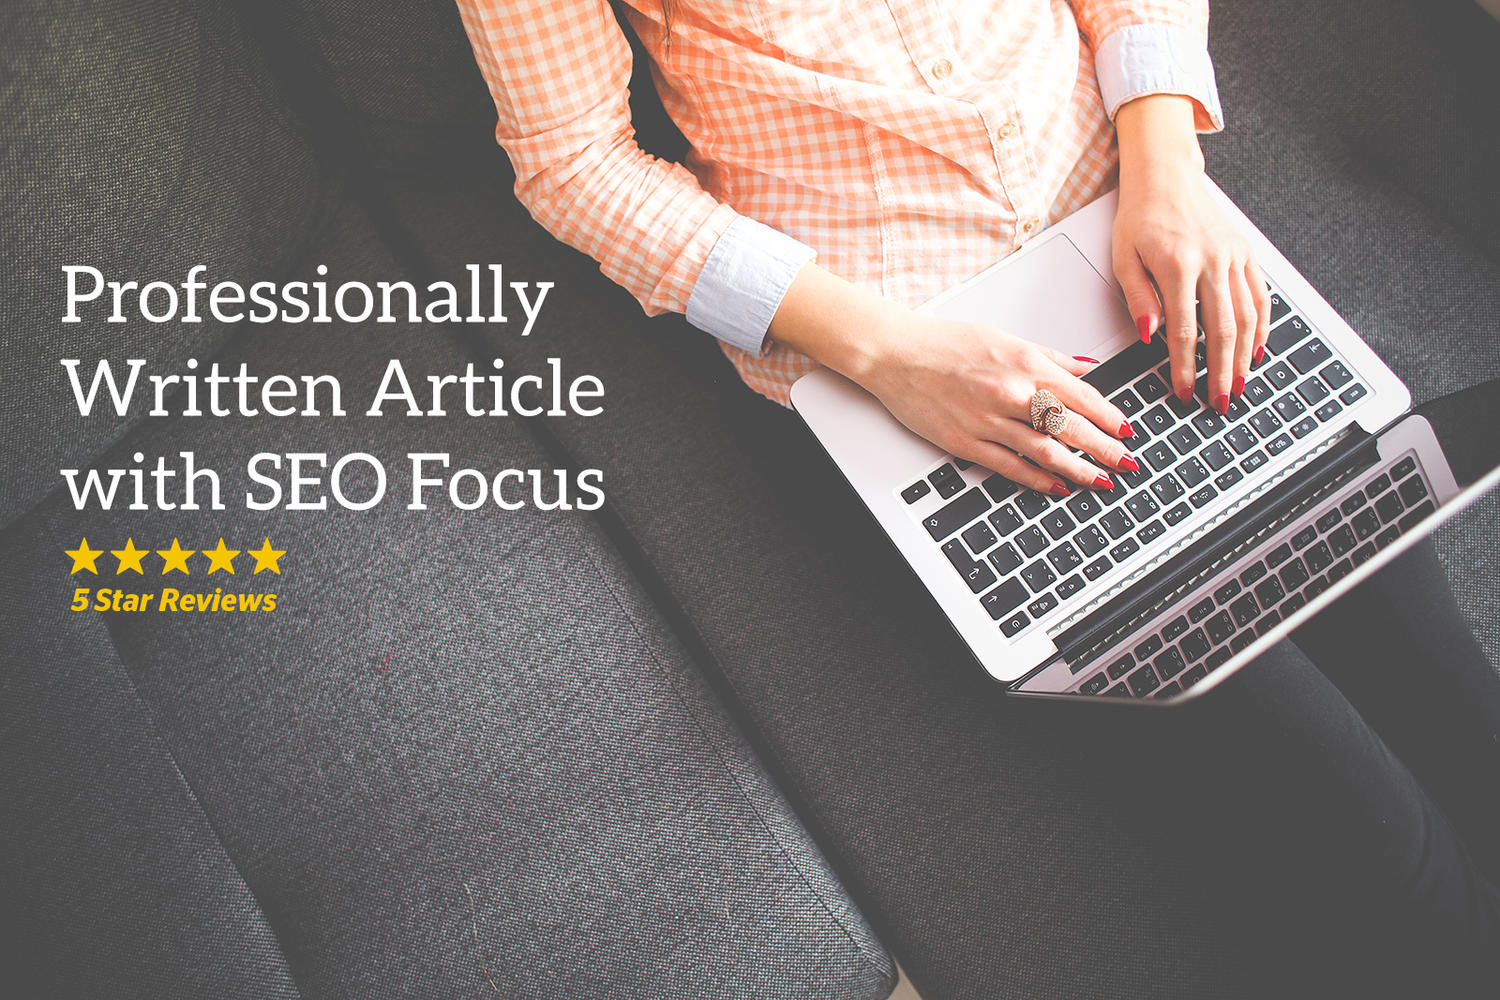 Professionally Written Article with SEO Focus - 700+ Words by zlaws - 77604